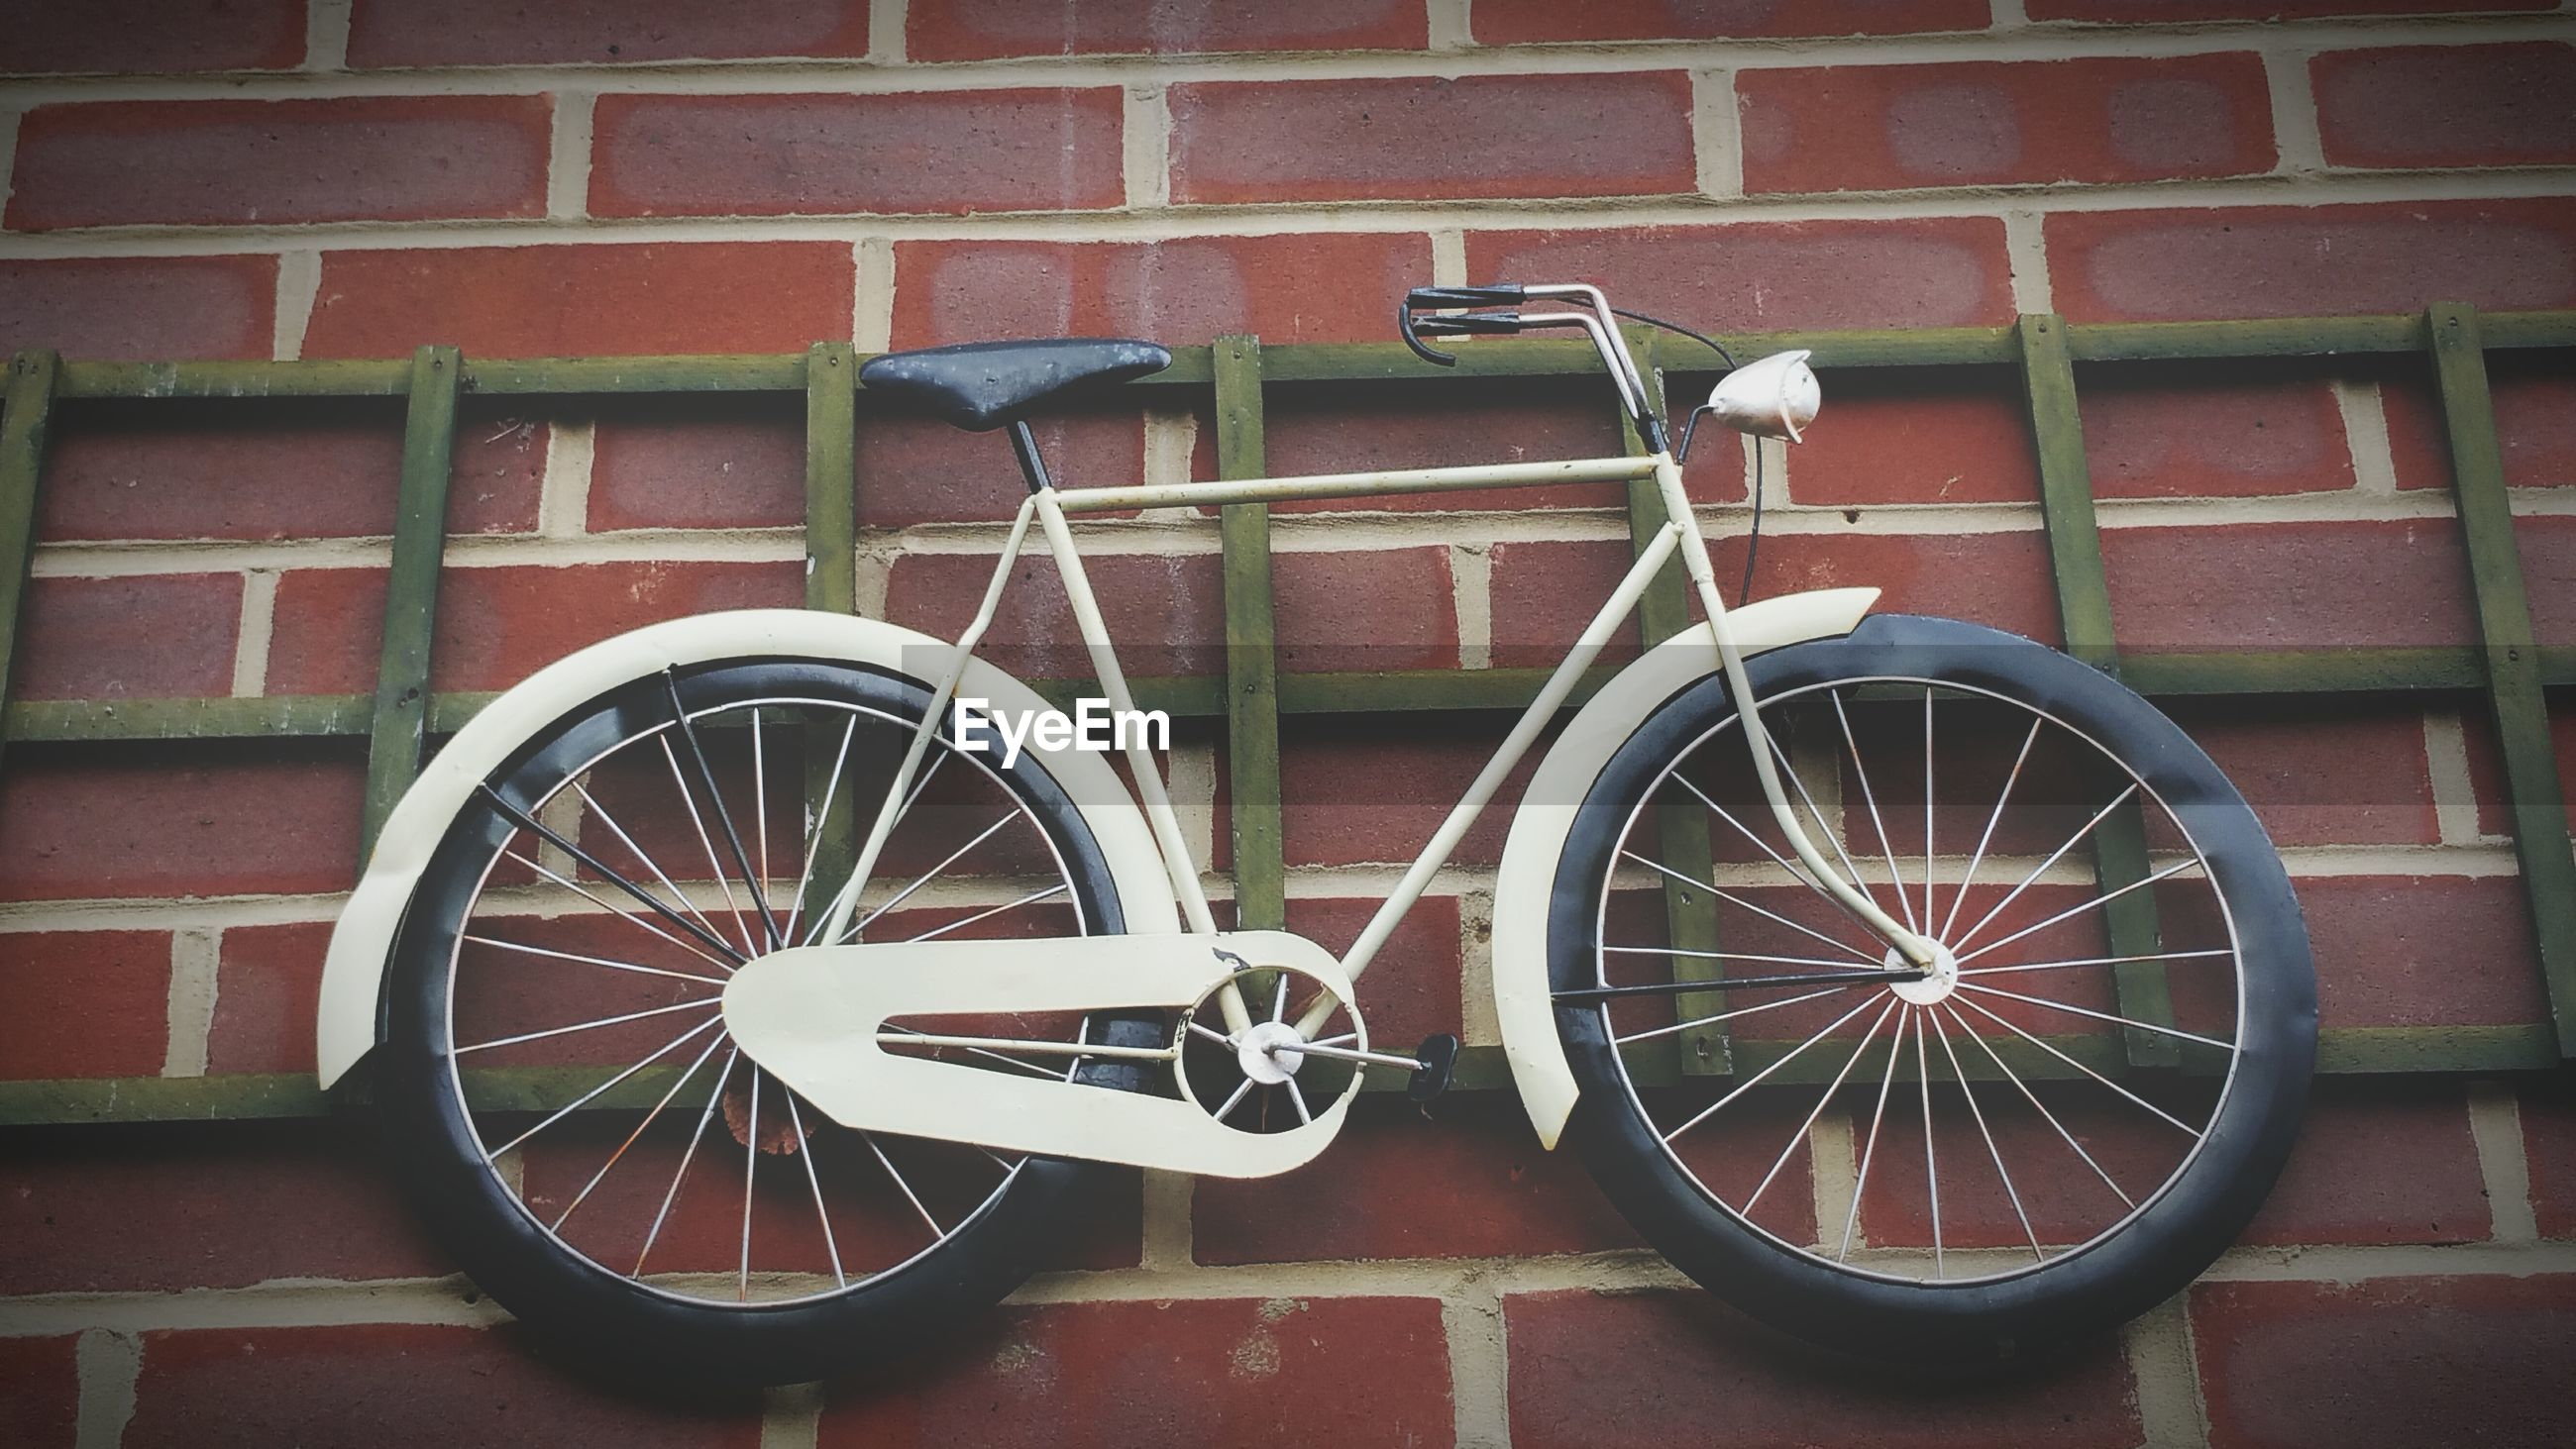 Low angle view of a bicycle against brick wall